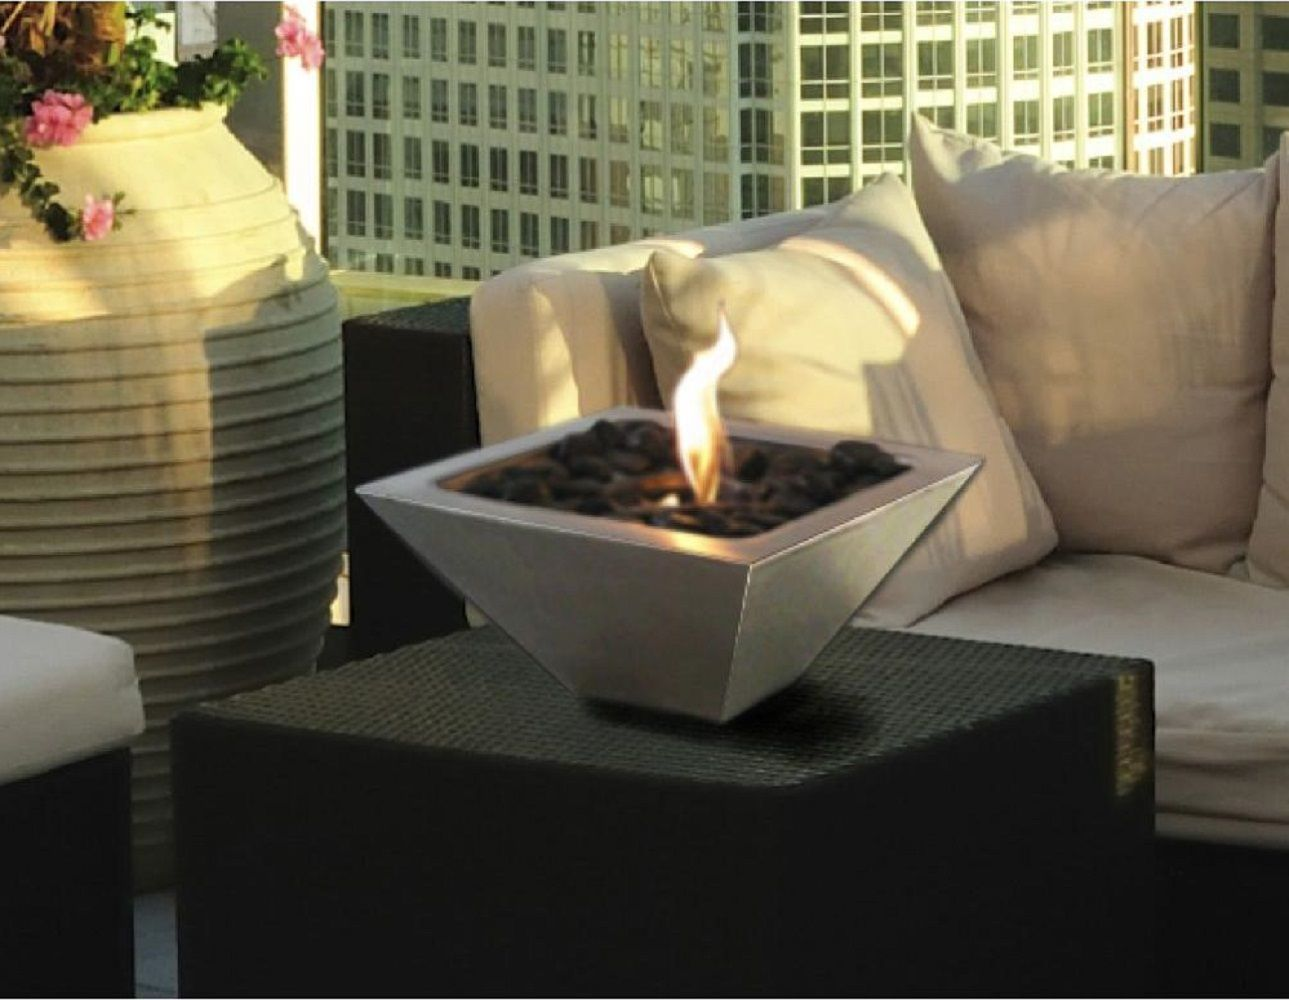 Now you don't have to sit around near a heater just to stay warm and cozy. The Empire model tabletop fireplace is a portable fireplace that you can move around at will. Put it on a table when you're indoors